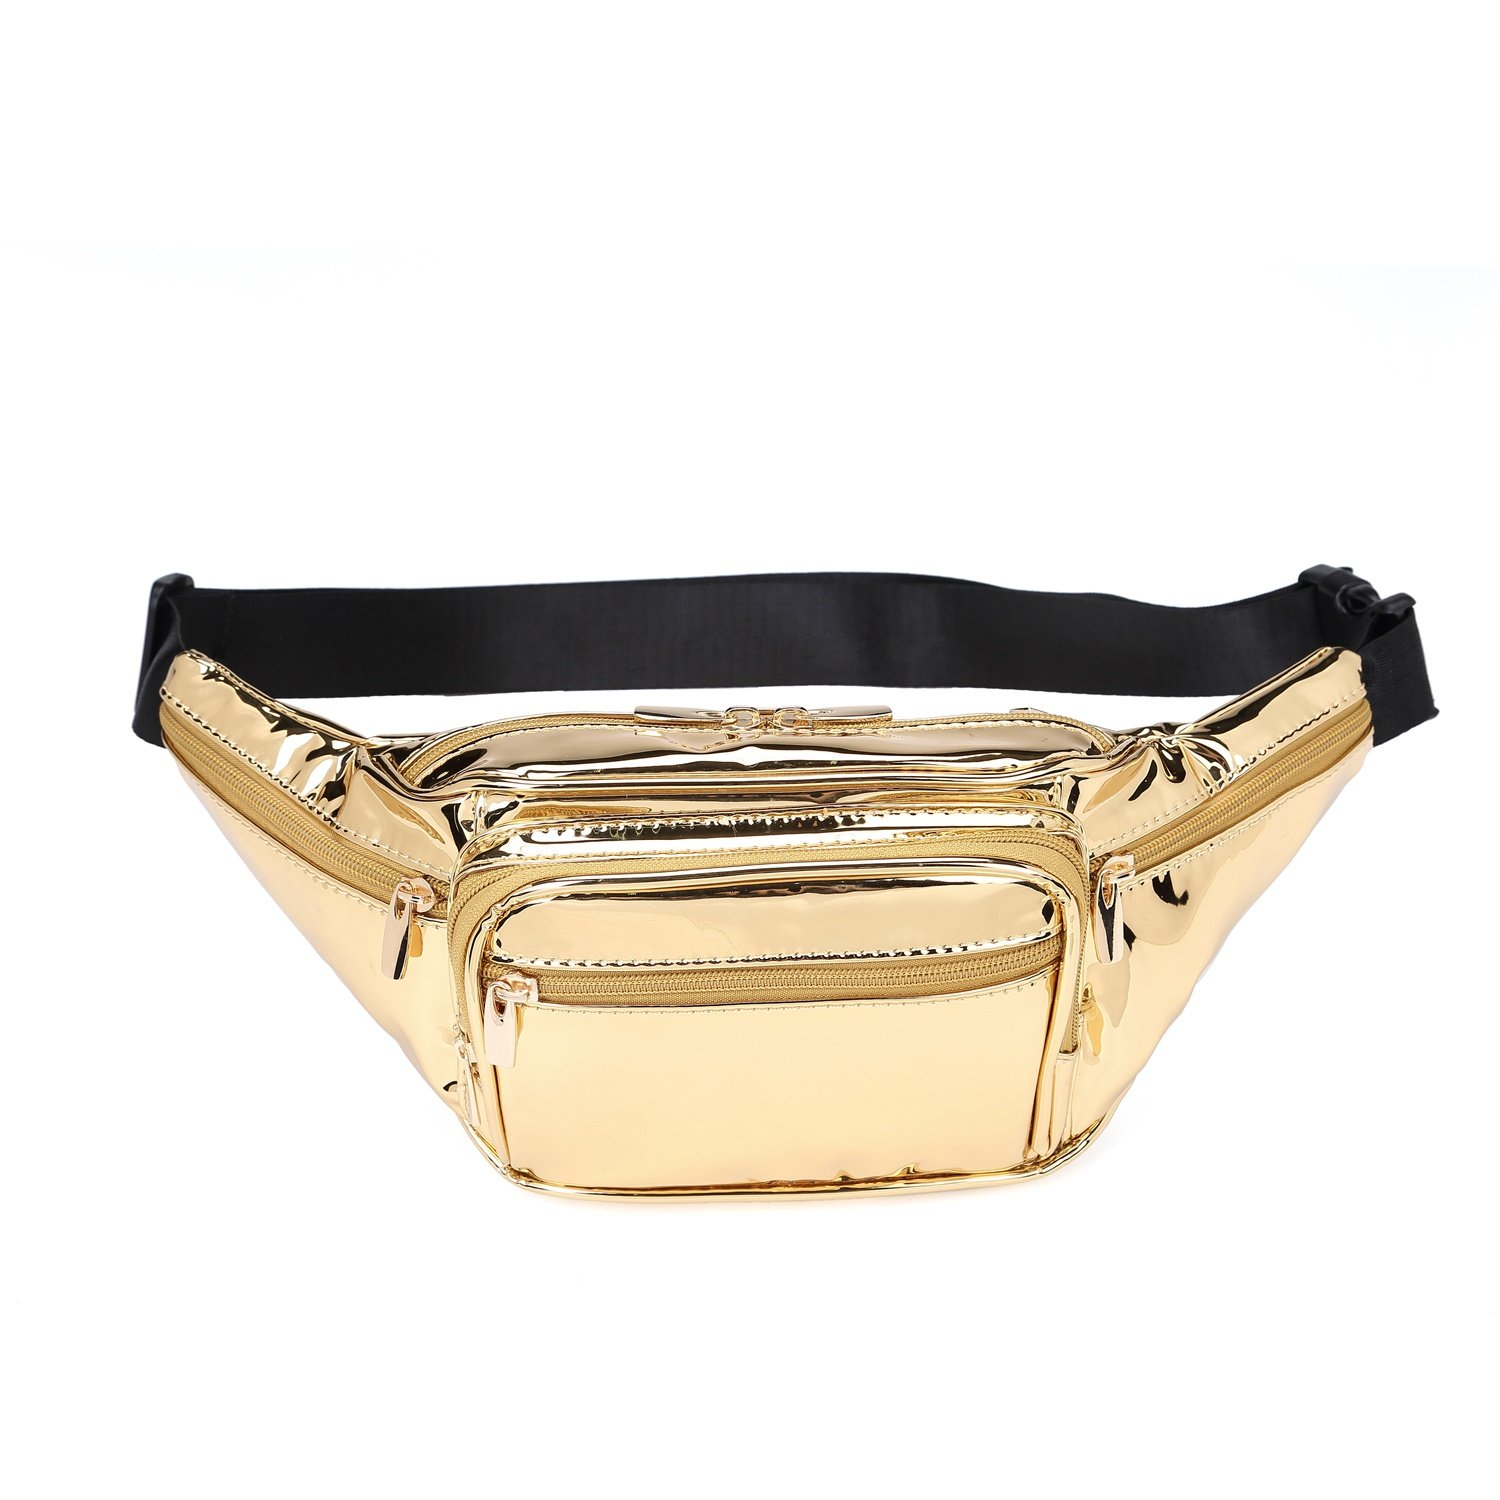 Hearty Trendy Fashion Signature Series Faux Leather 6 Pockets Fanny Pack Waist Pack (Black Floral) WP001-BF